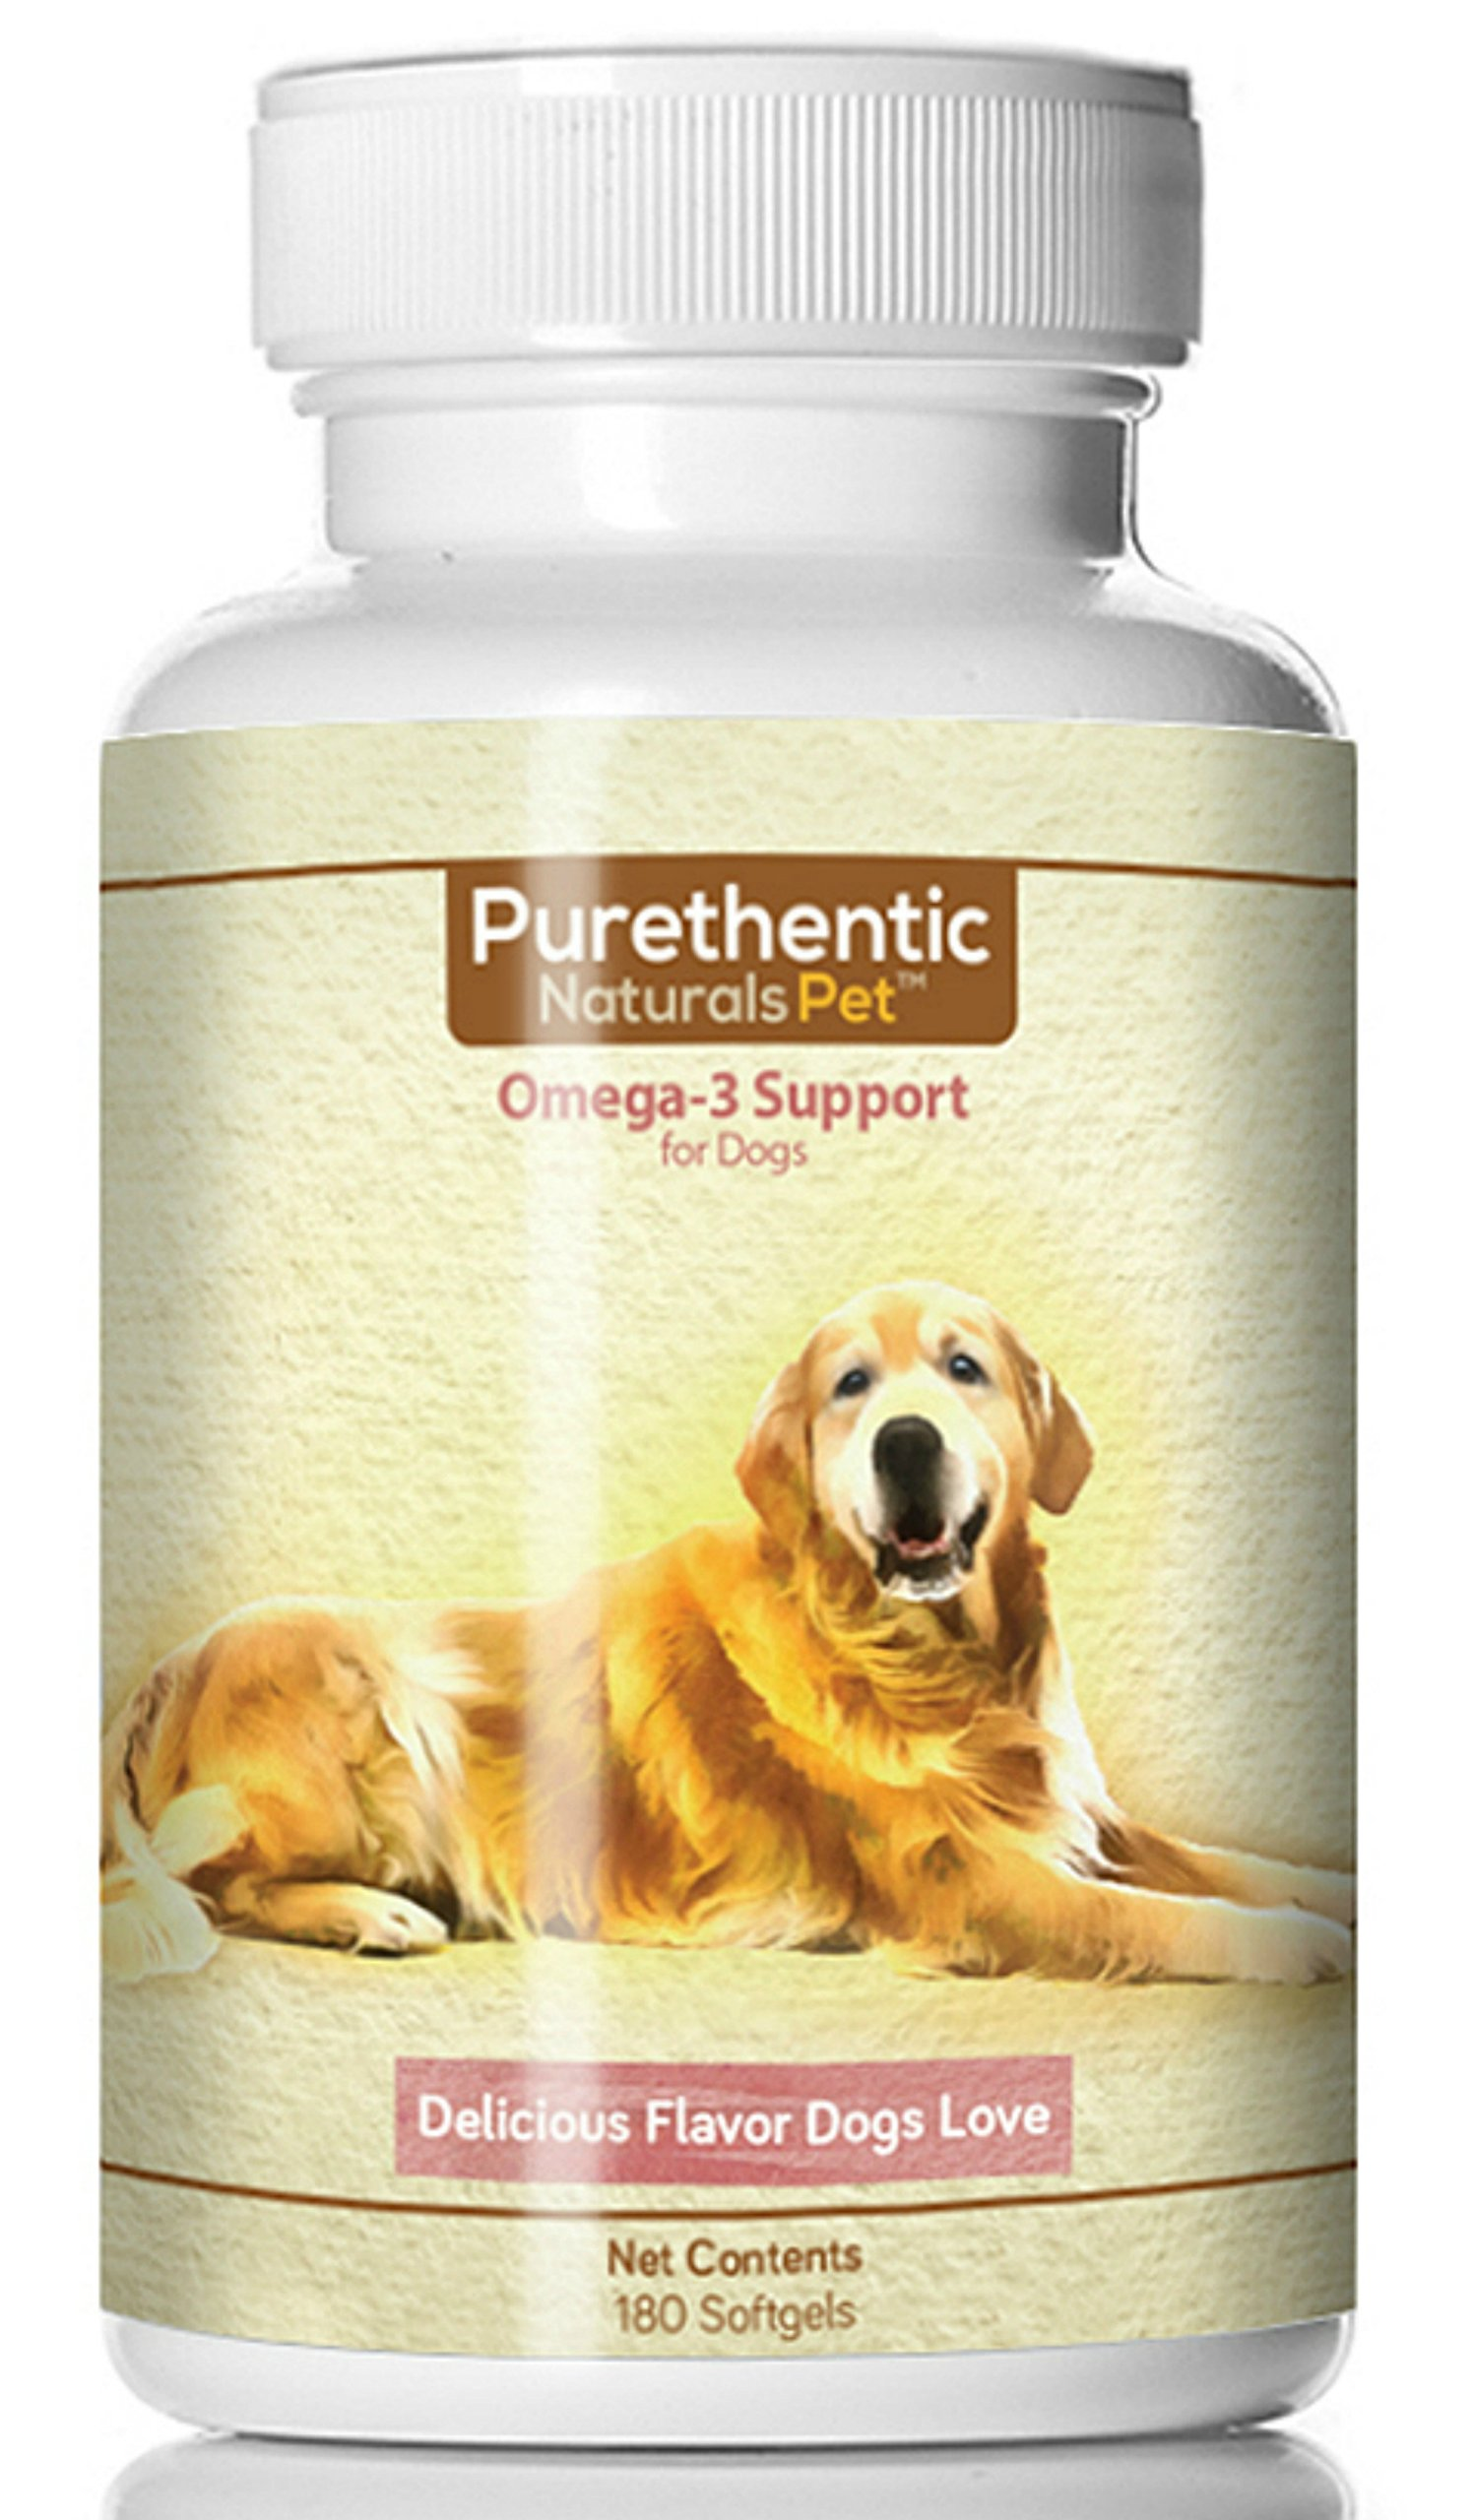 Omega 3 for Dogs, Fish Oil for Dogs 180 Softgels Pure & Natural Fatty Acids. (High EPA and DHA) (Helps Dog Allergies & Brain Function) Made in USA (Pack of 2) by Purethentic Naturals